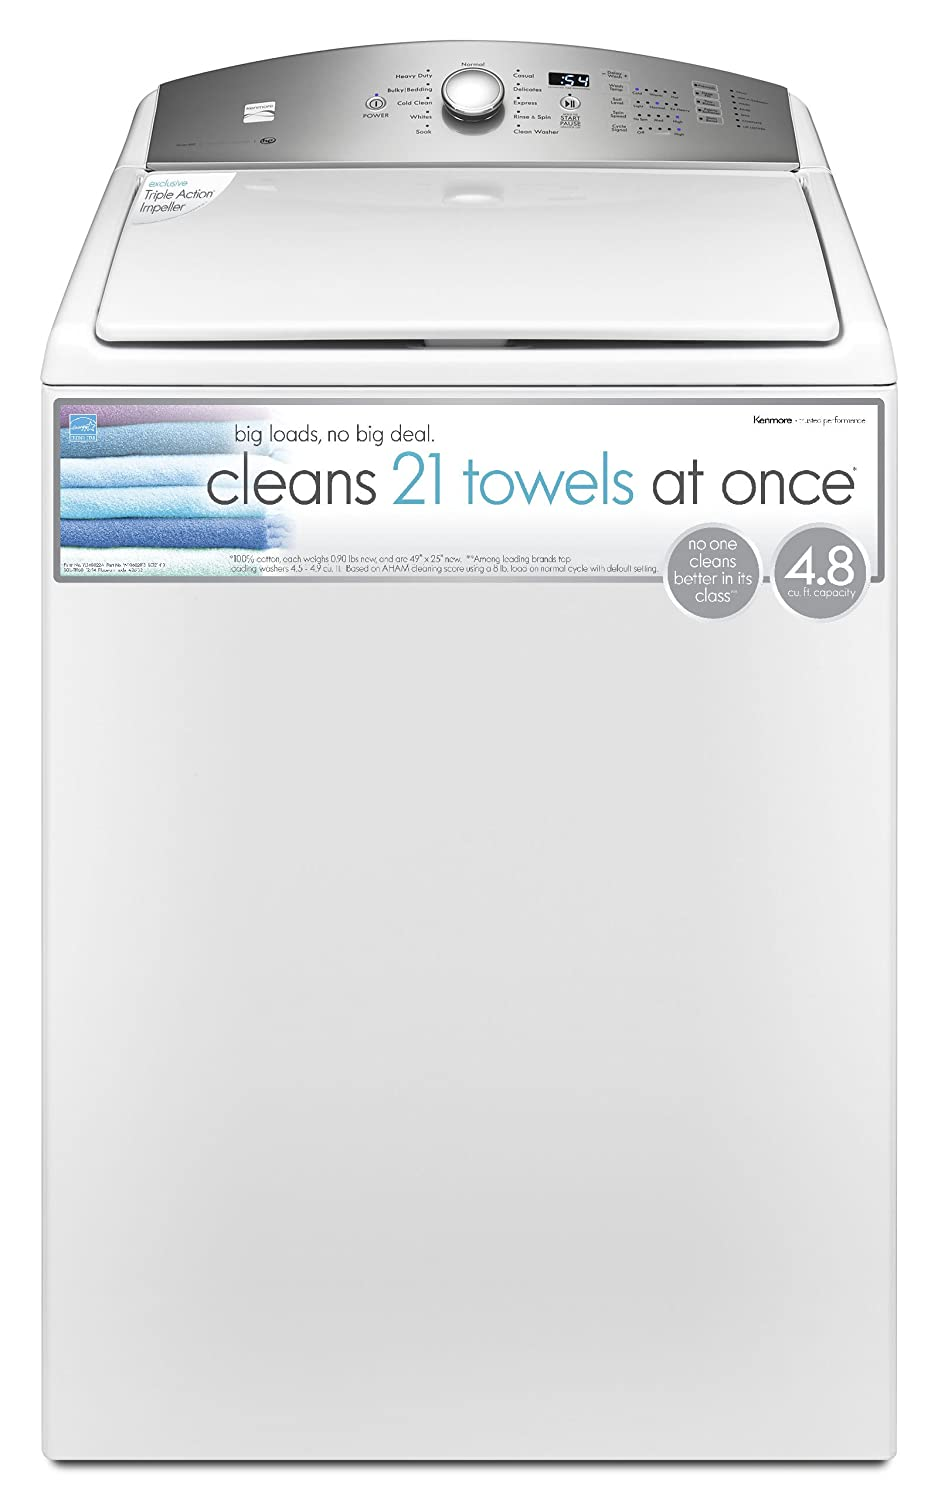 kenmore 600 series washer. kenmore 4.8 cu.ft. top load washer with triple action impeller in white, 600 series